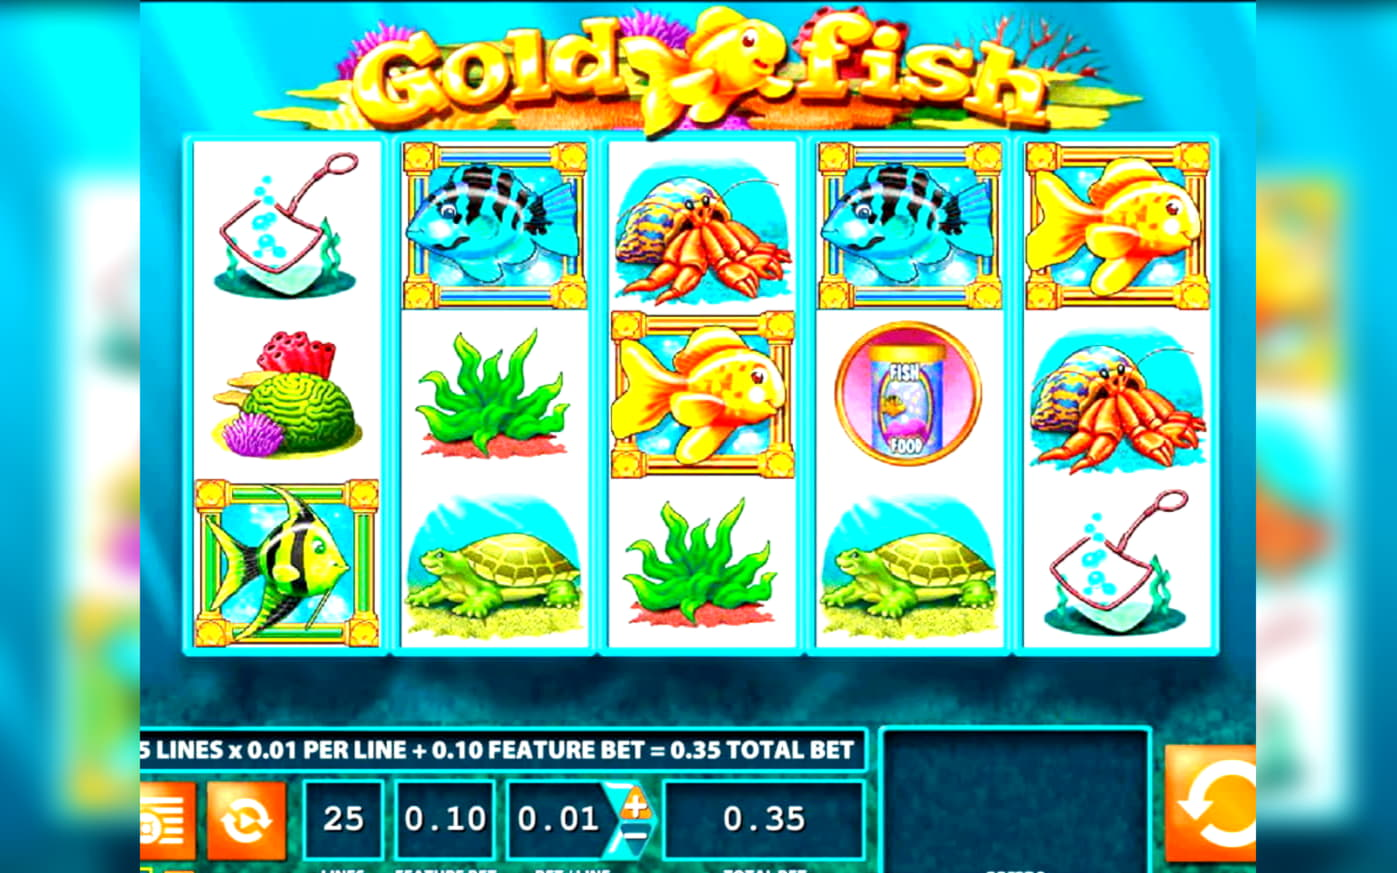 825% Match at a Casino at River Belle Casino